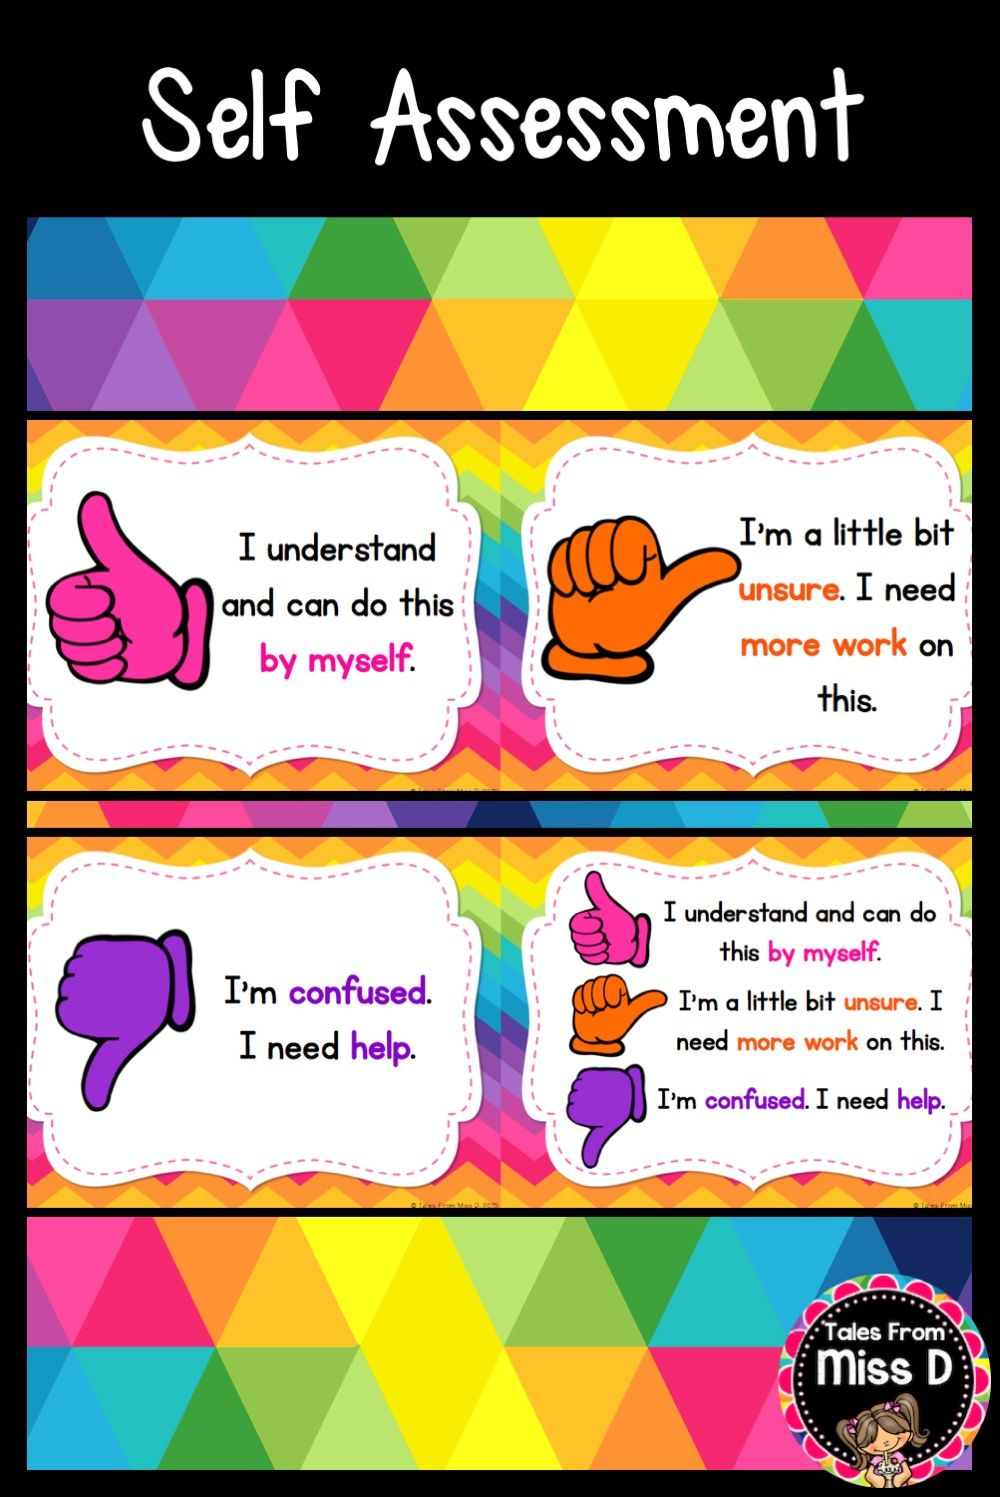 Self Assessment Posters (With images) Assessment